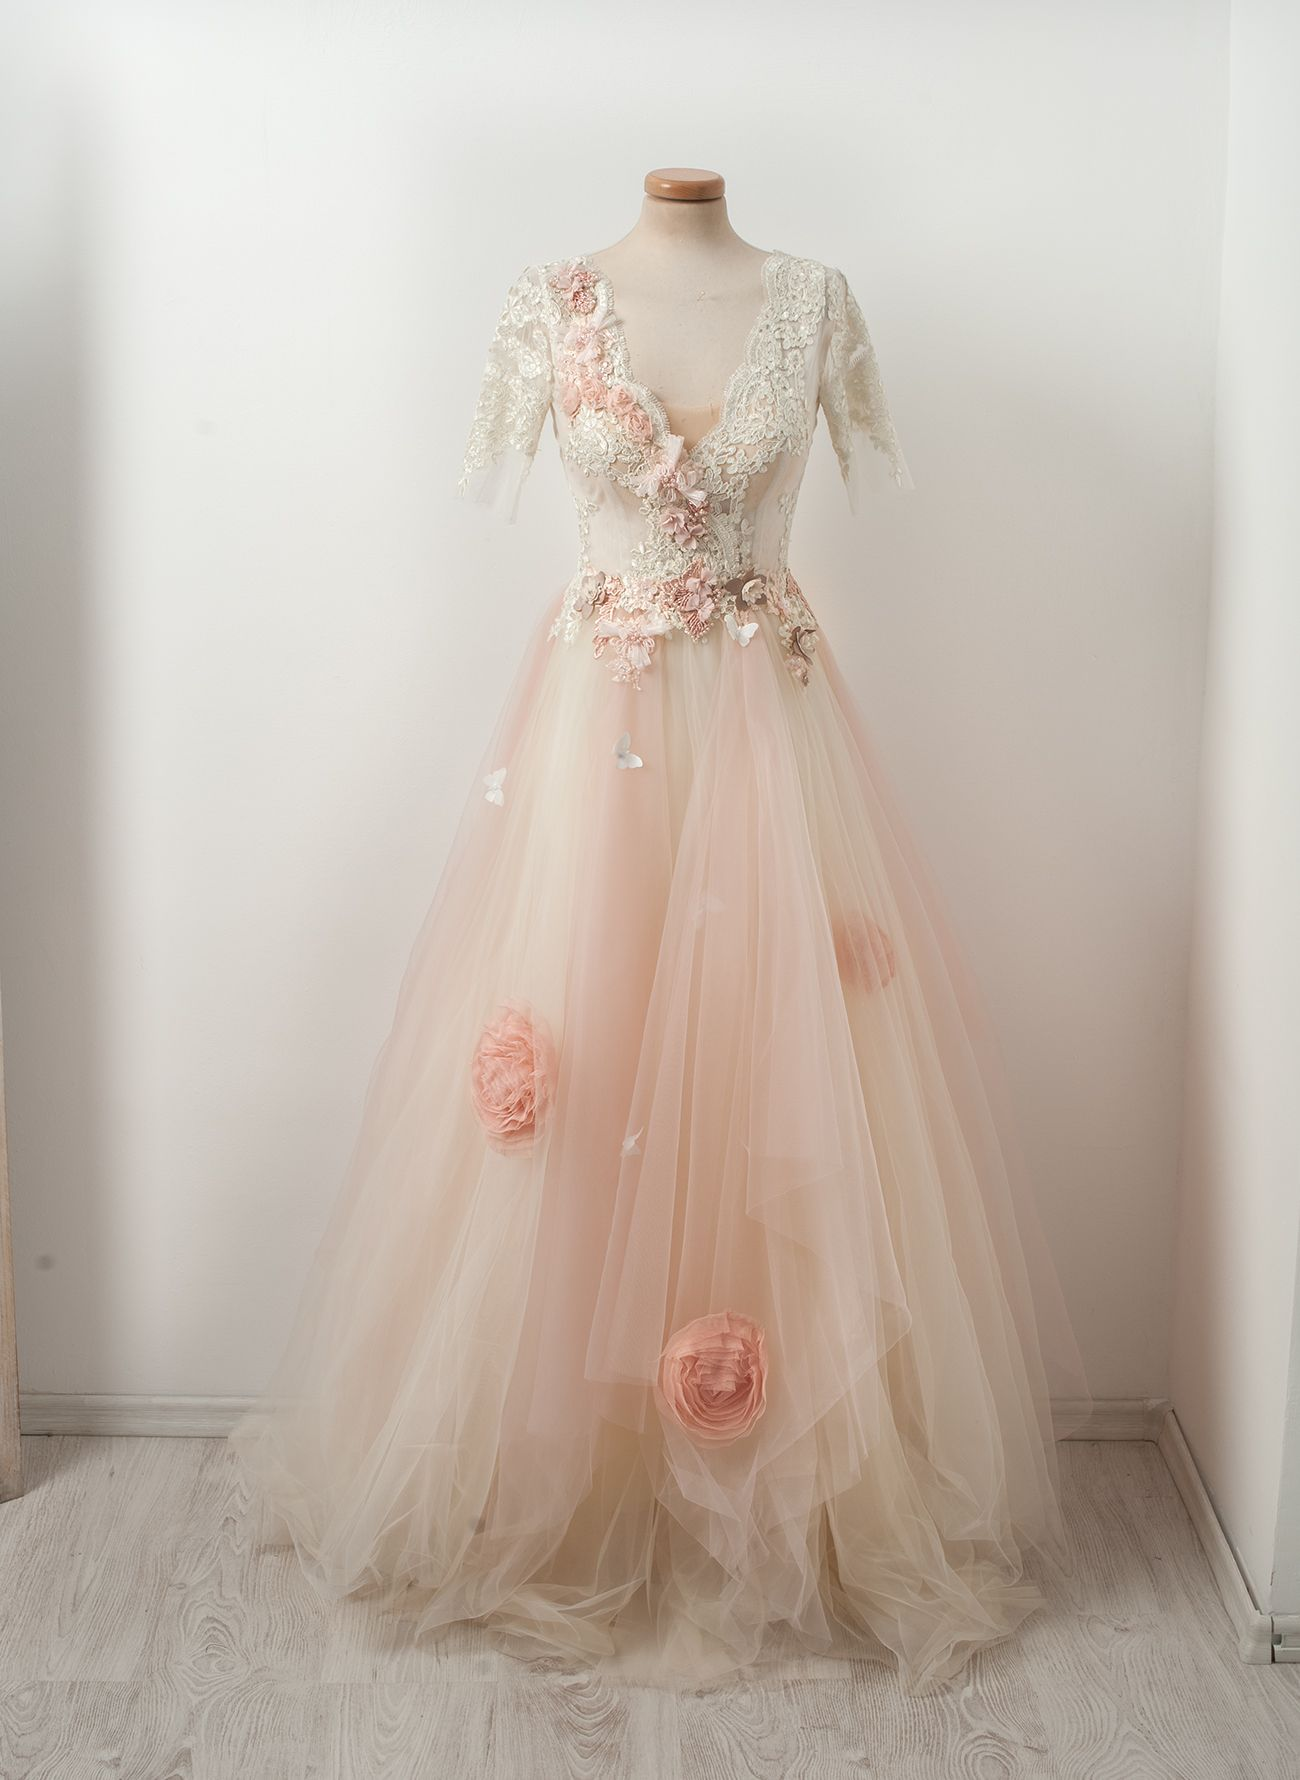 Powder pink bridesmaid dress  A dessert made from powder pink roses on marzipan mousse tulle and